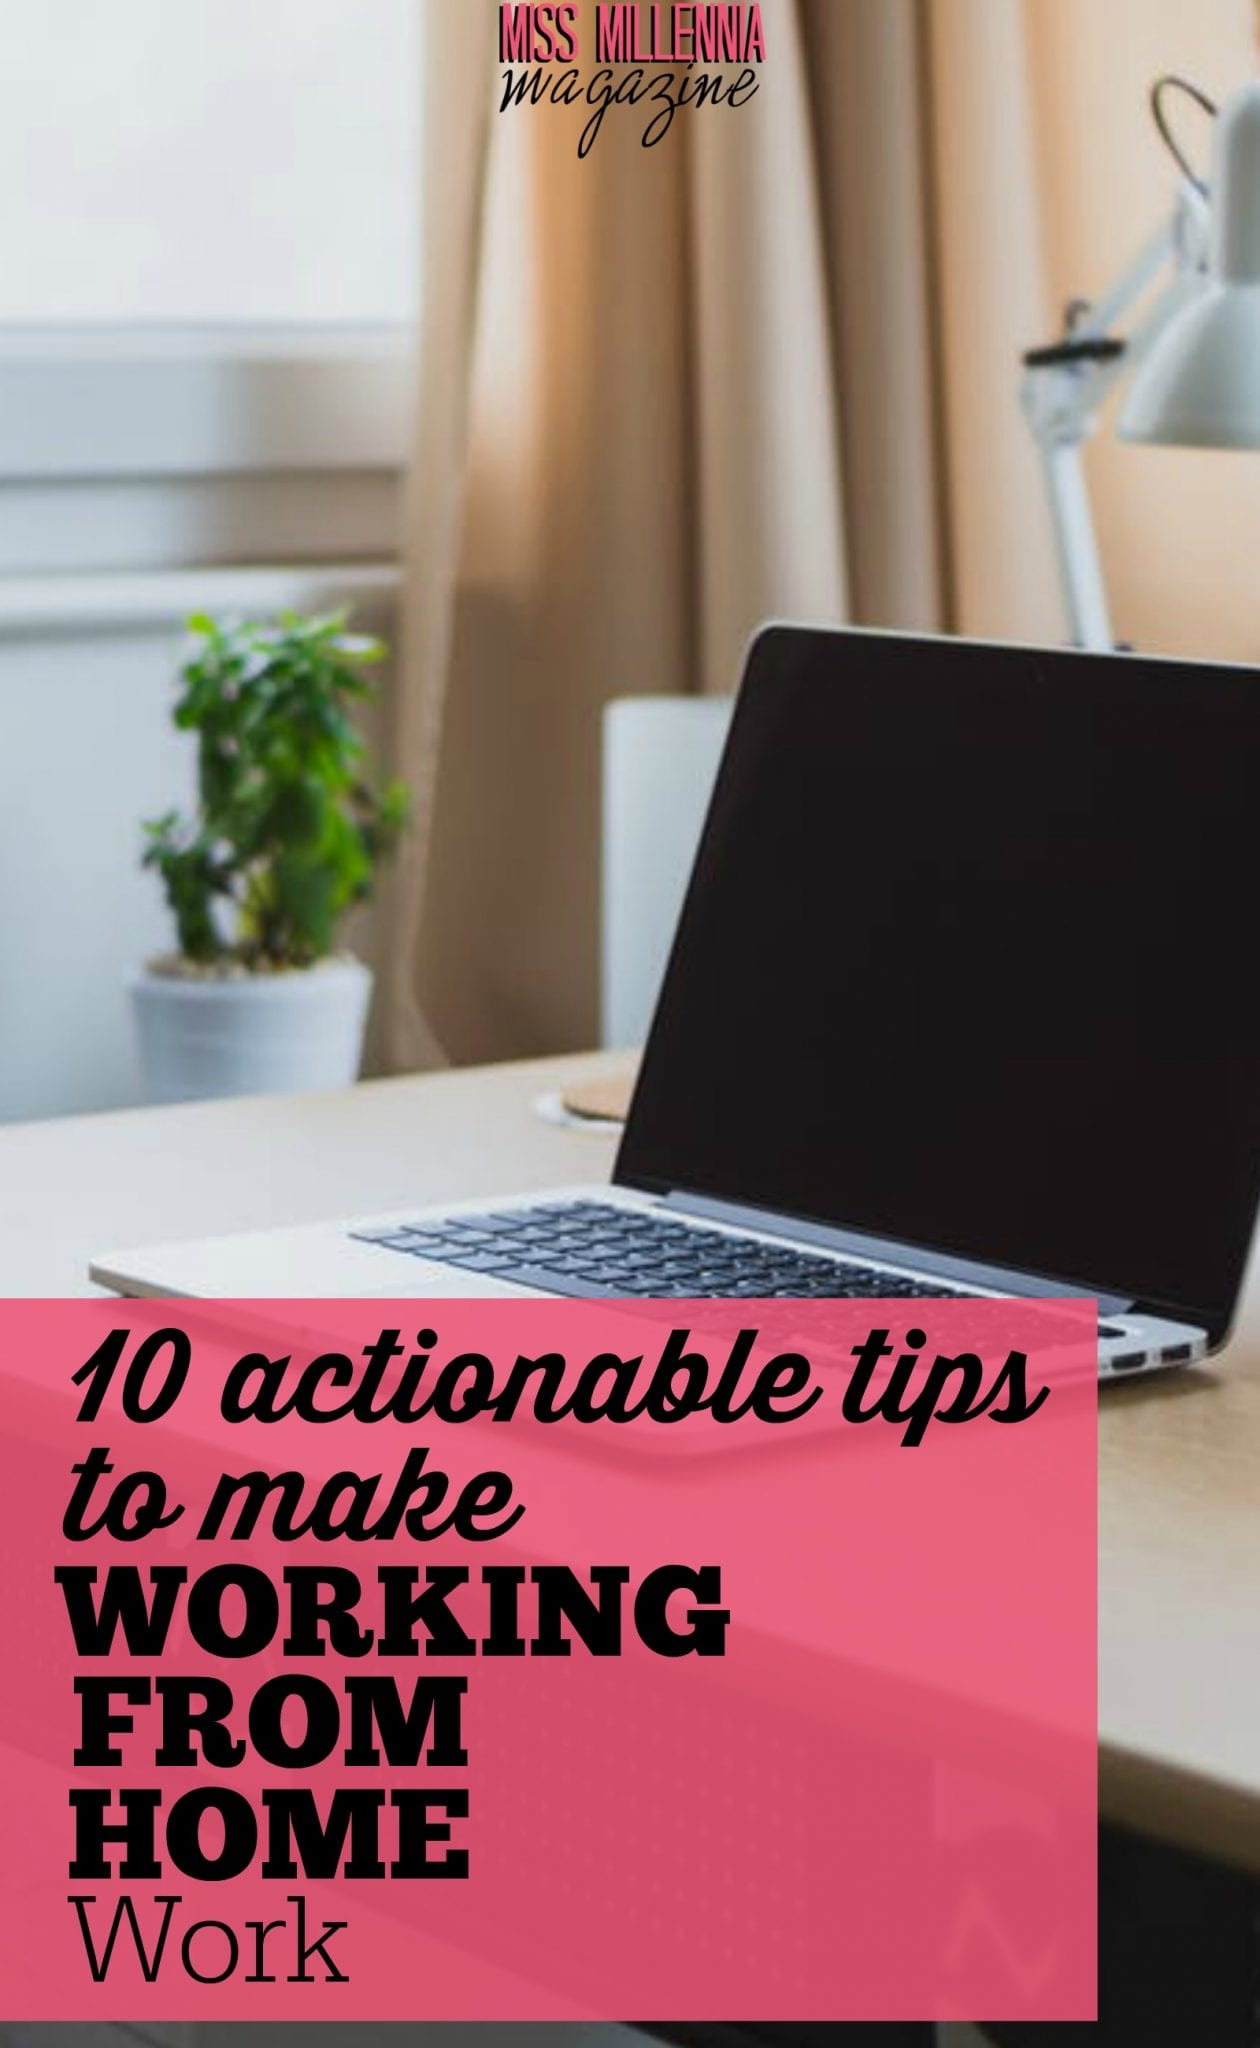 As someone who has a ridiculous amount of experience working from home, here are 10 things I've learned are necessary for efficient remote work.